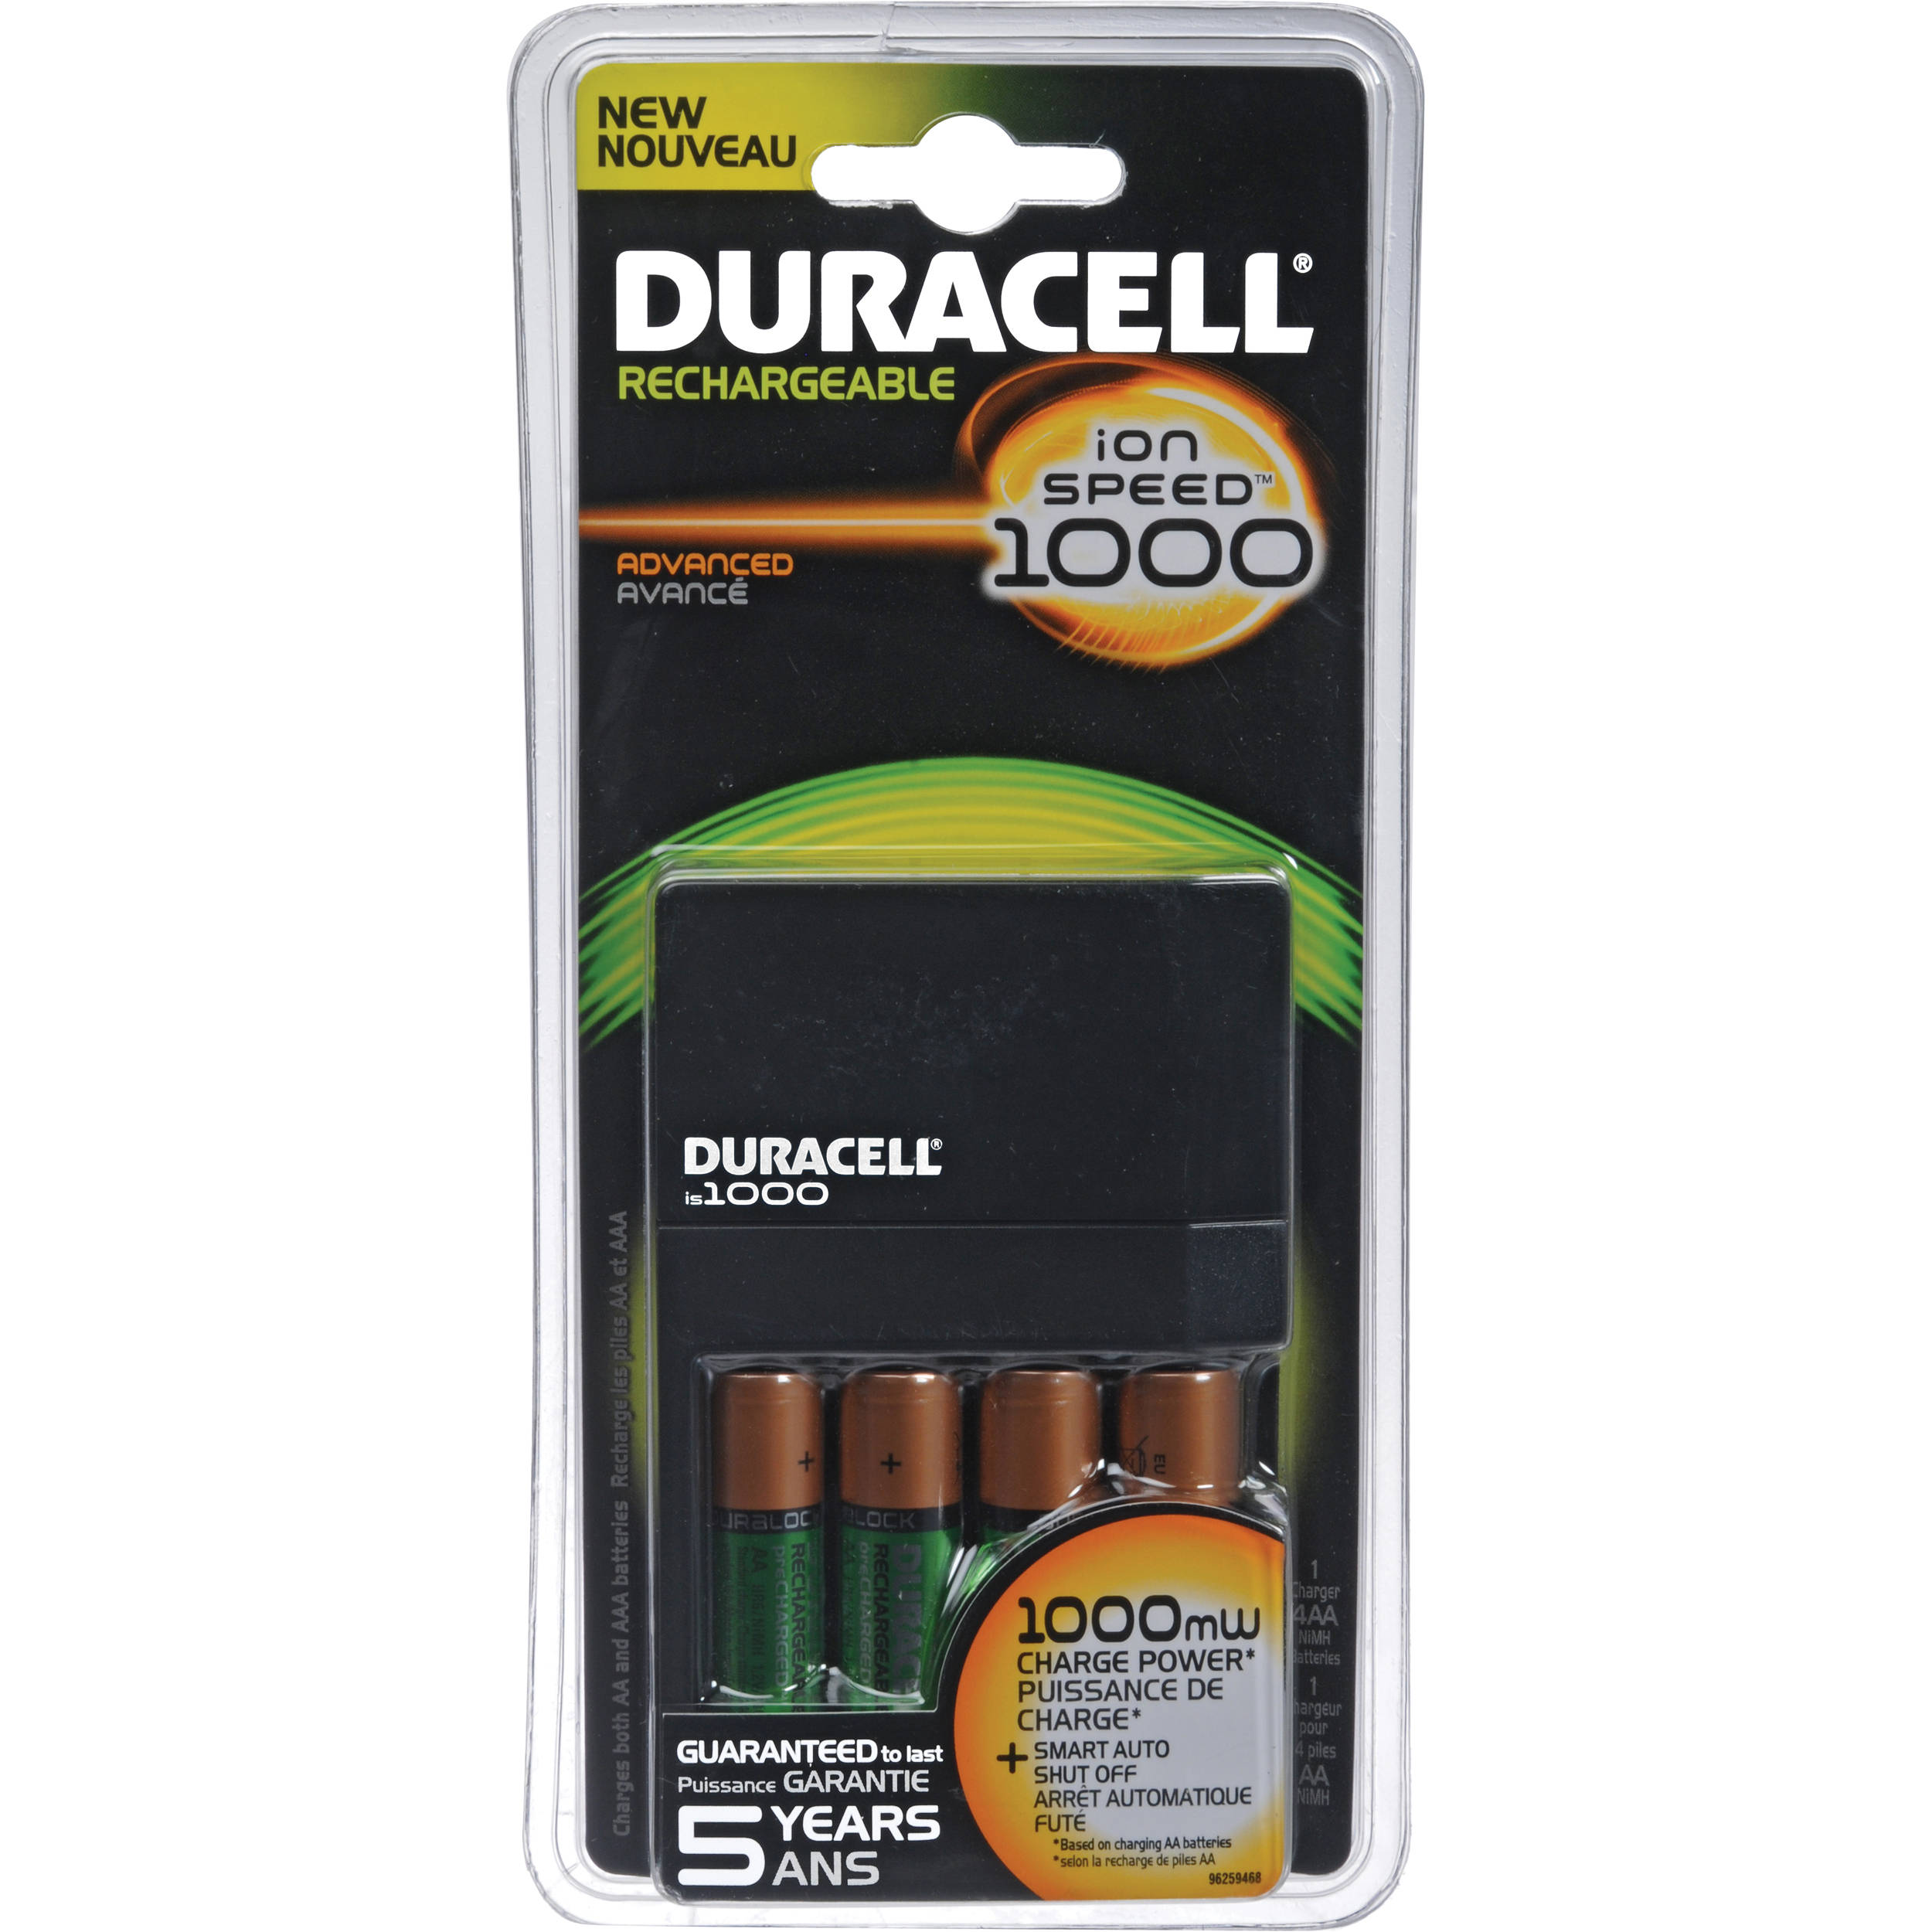 duracell ion speed 1000 battery charger with 4 aa nimh. Black Bedroom Furniture Sets. Home Design Ideas